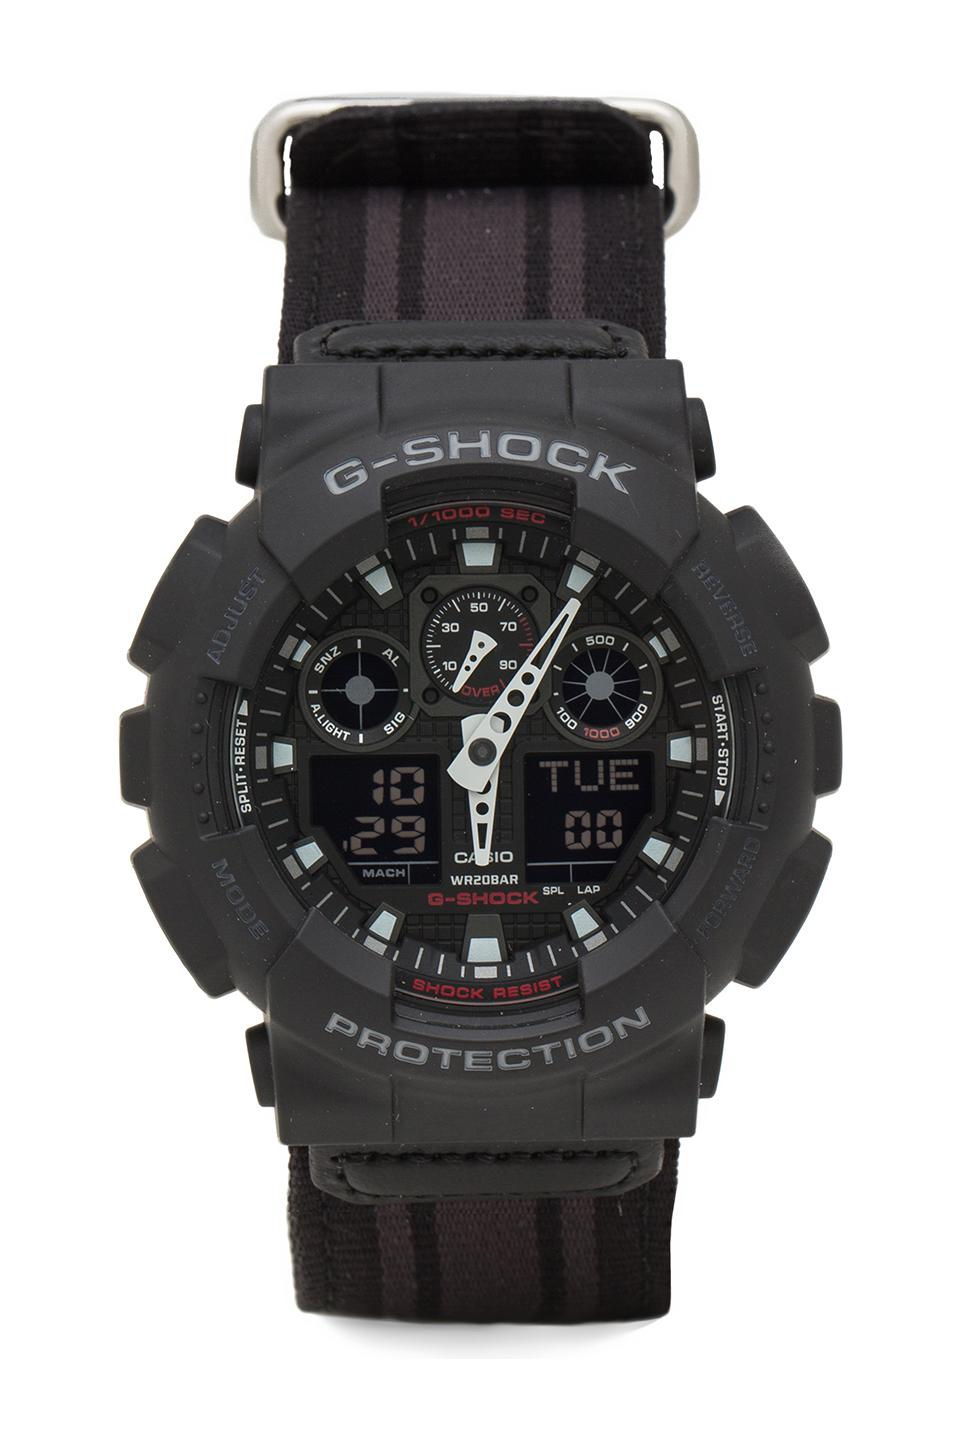 G-Shock GA-100MC Cloth Band Watch in Black